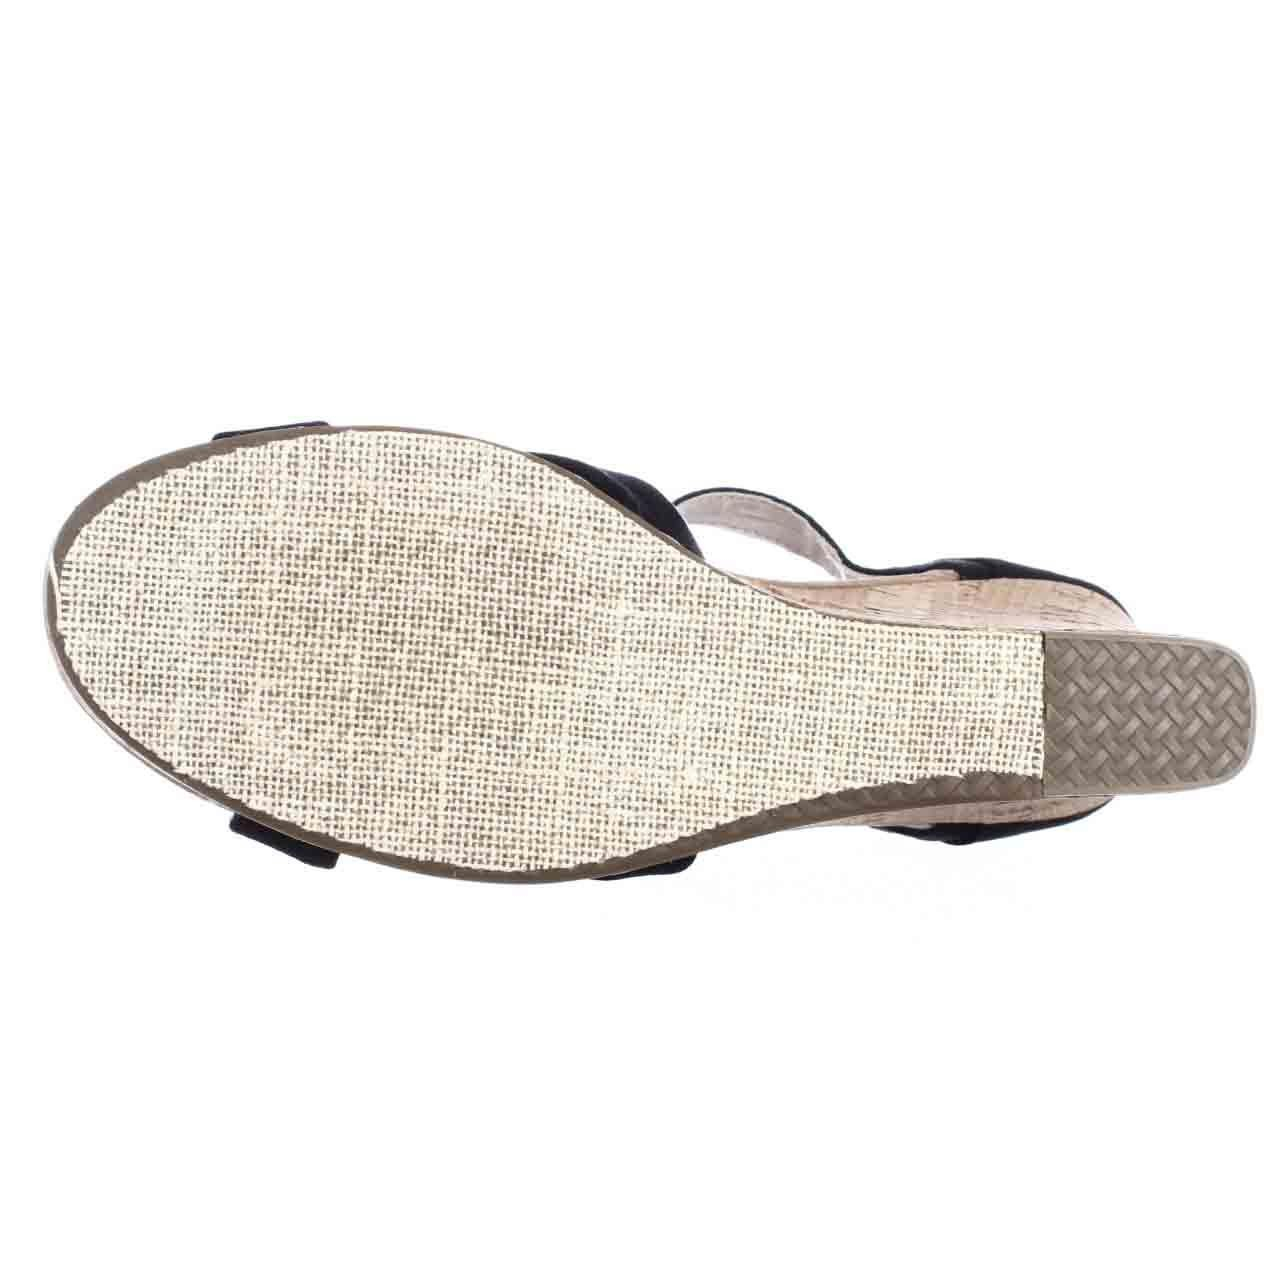 Toms Shoes Online International Shipping